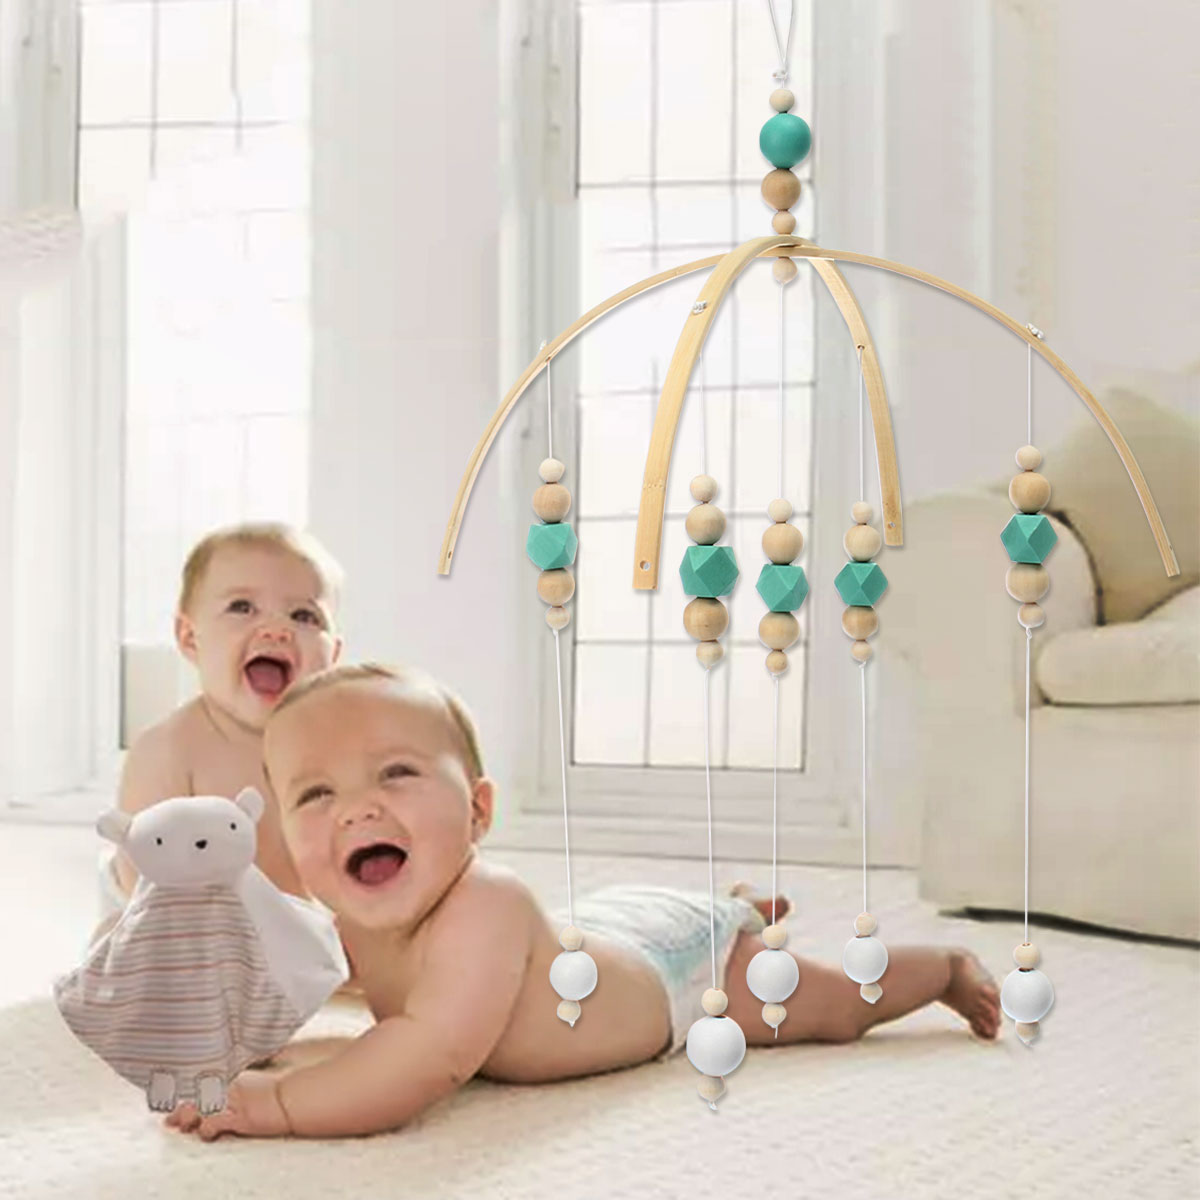 Wooden Baby Rattles Baby Crib Mobile Bed Bell Toy Hanging DIY Rotary Holder Arm Bracket Baby Room Decorative Wood Bead Gift